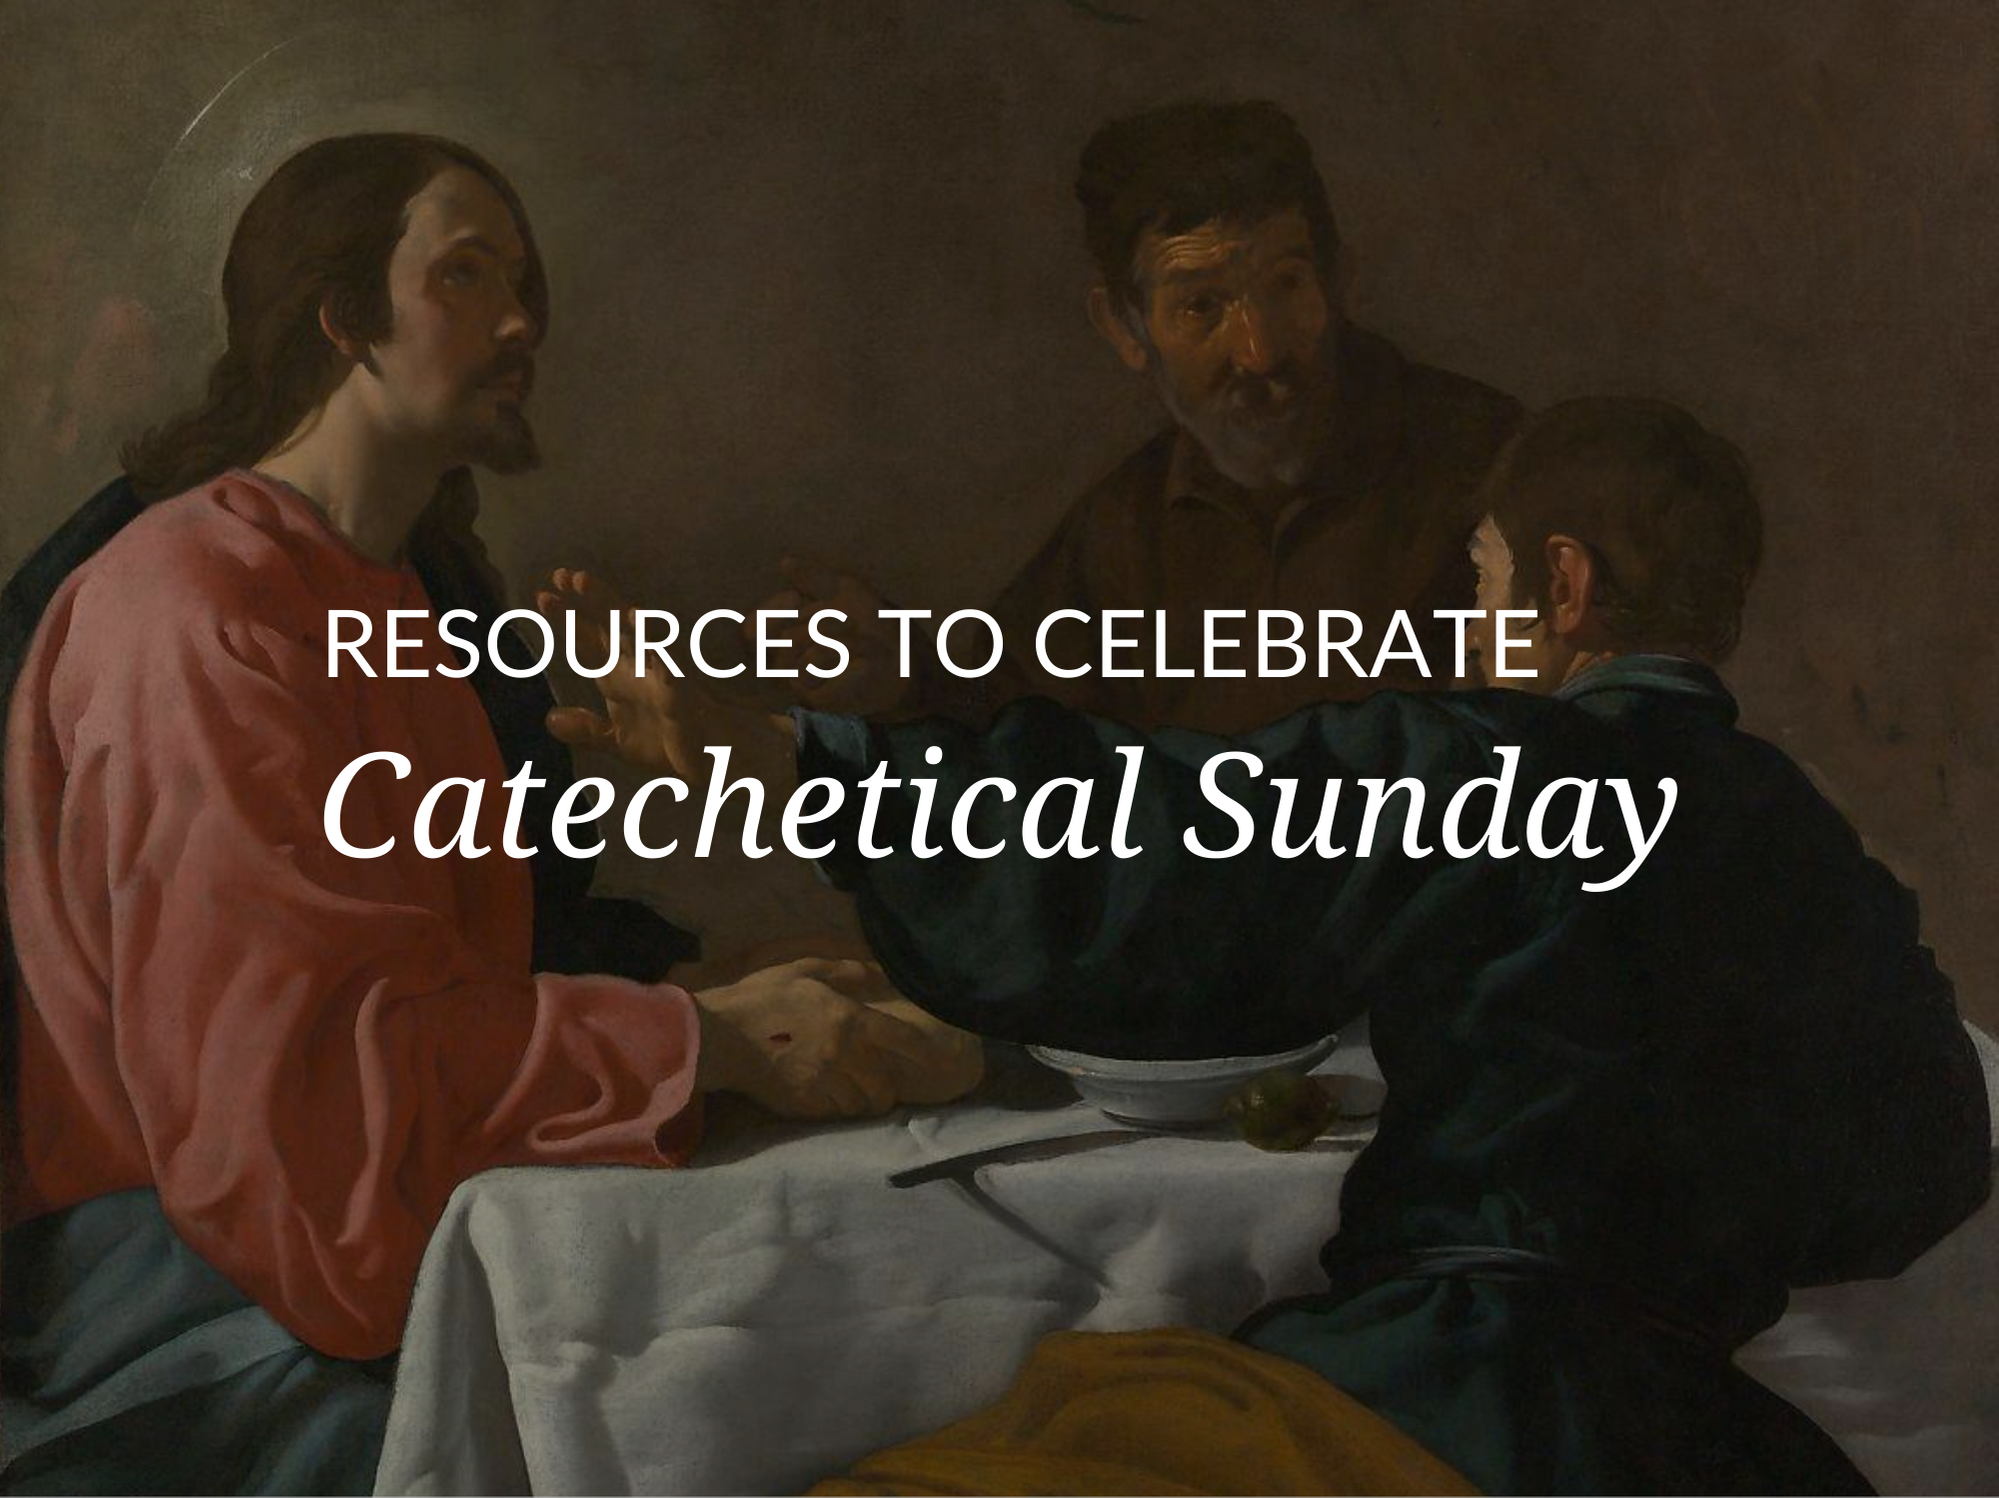 resources-to-celebrate-catechetical-sunday-2020